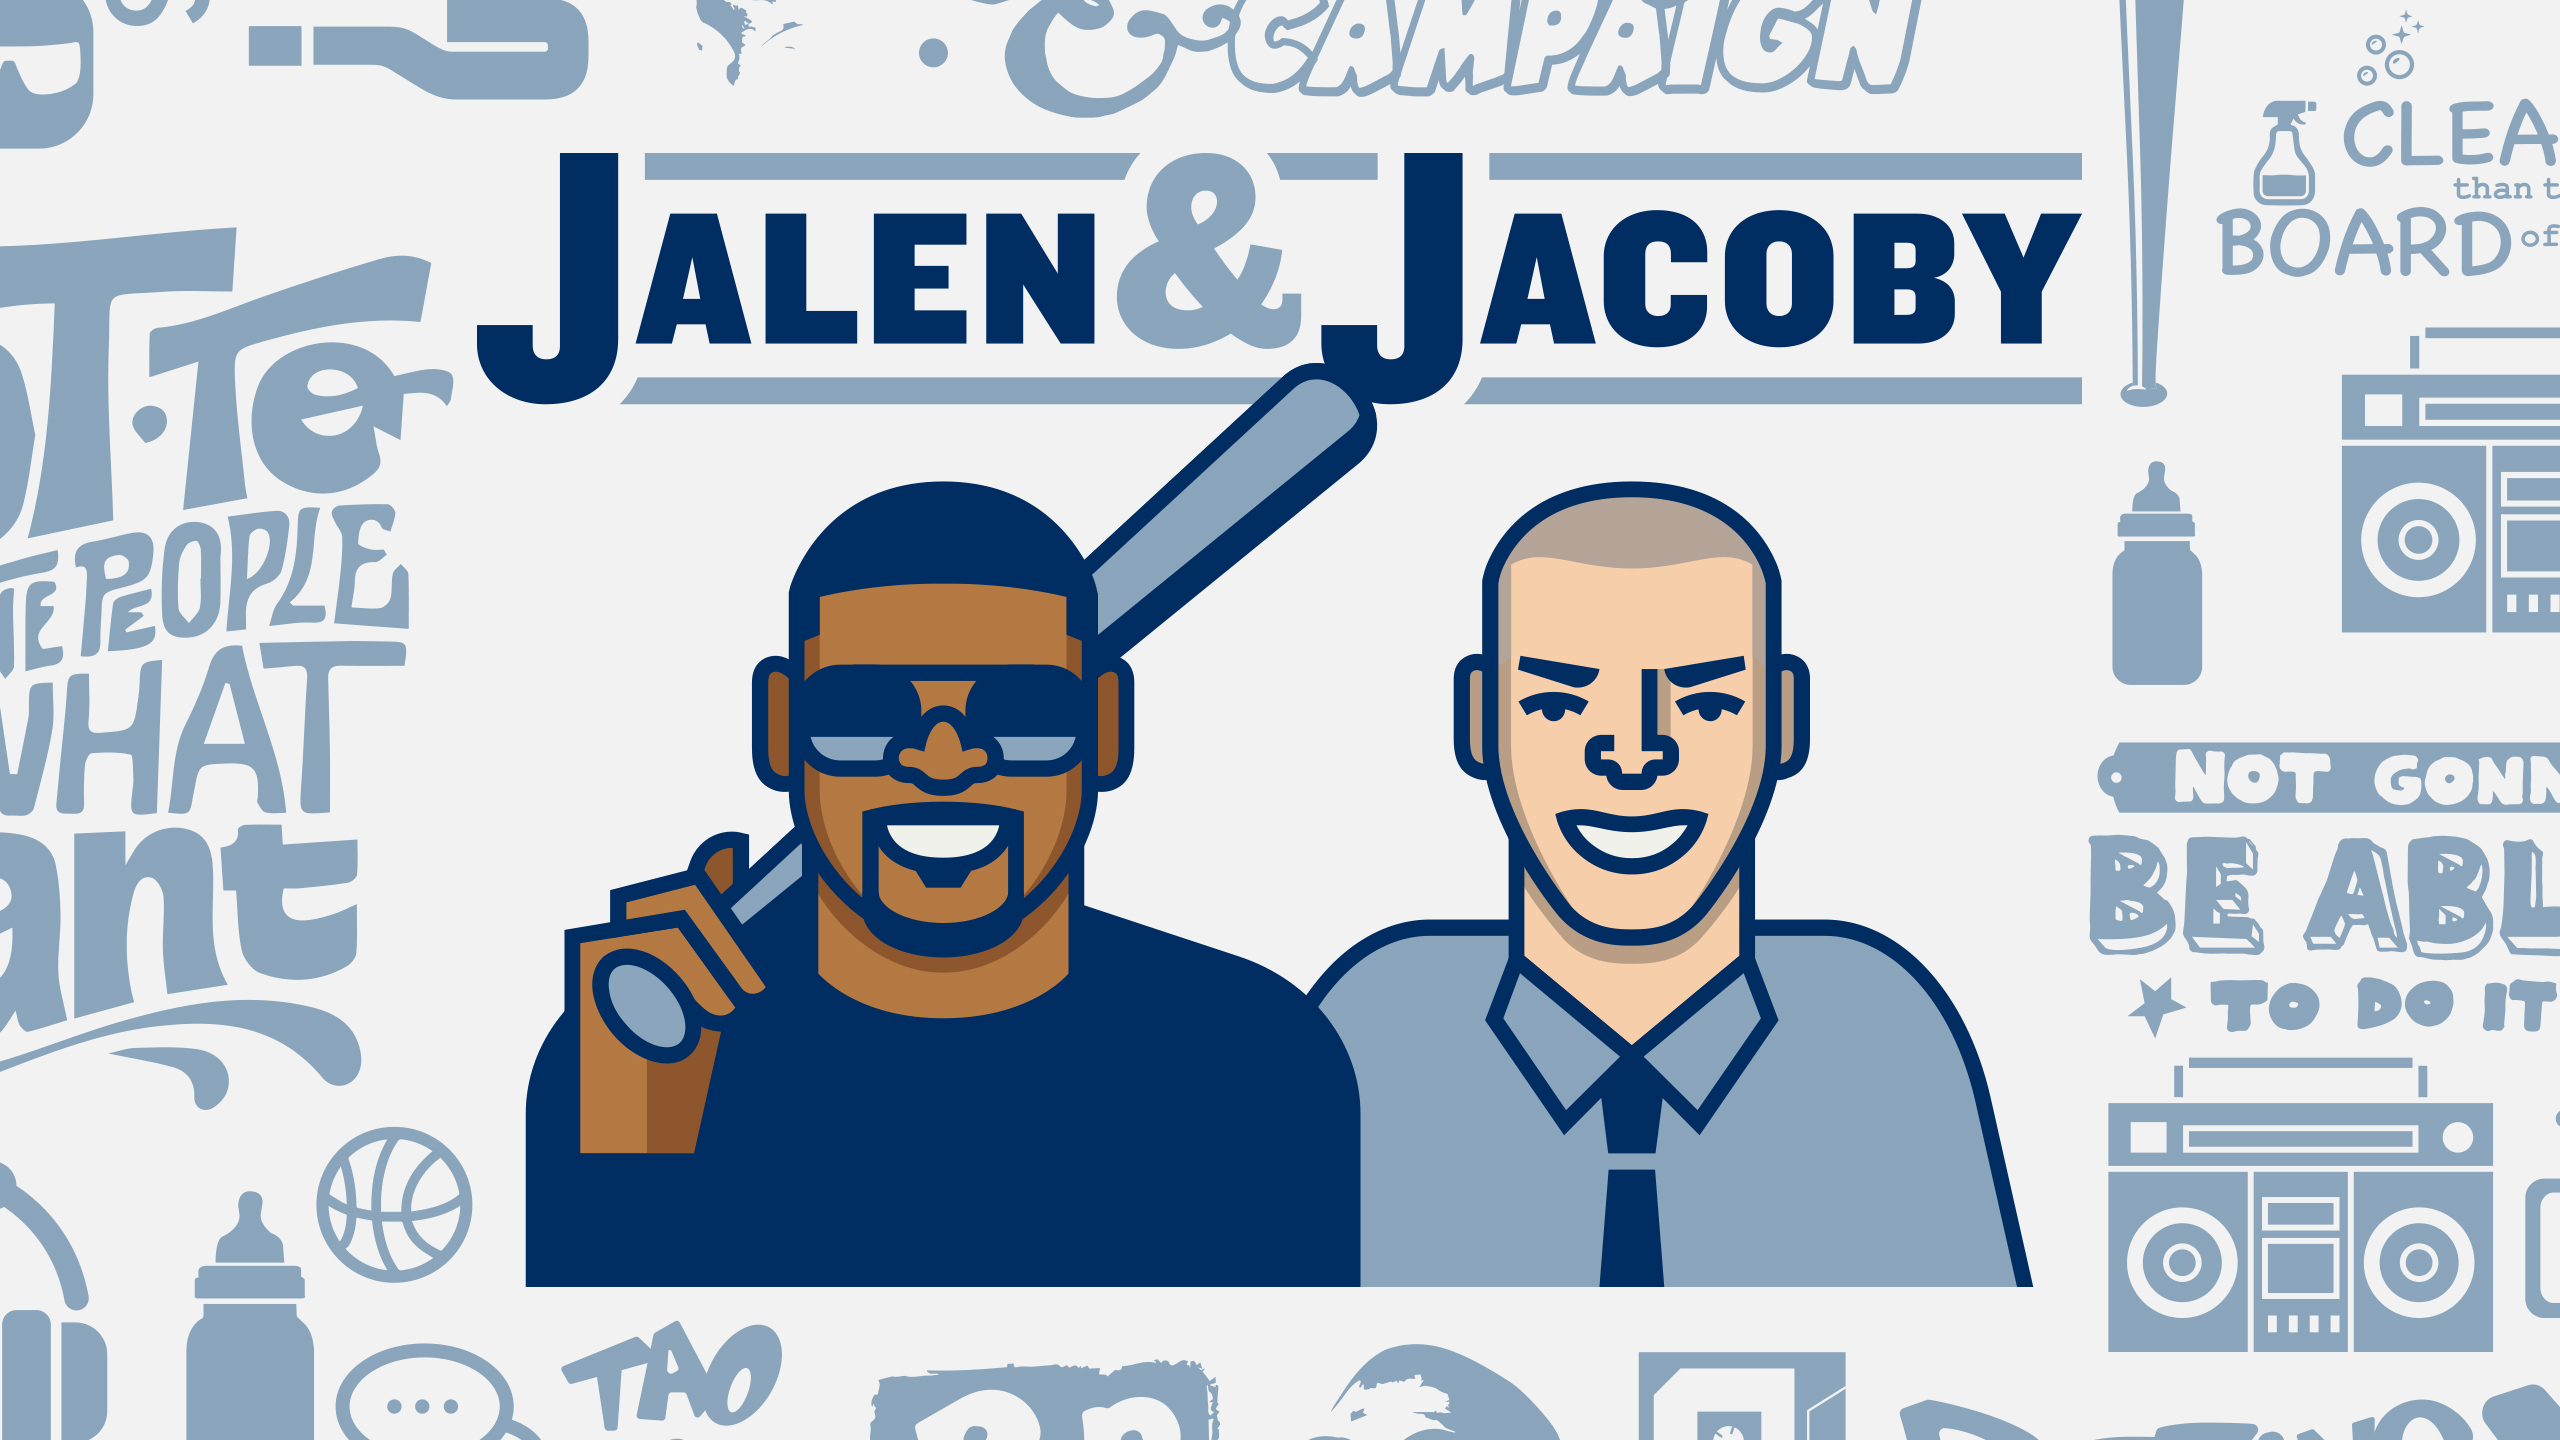 Wed, 4/17 - Jalen & Jacoby